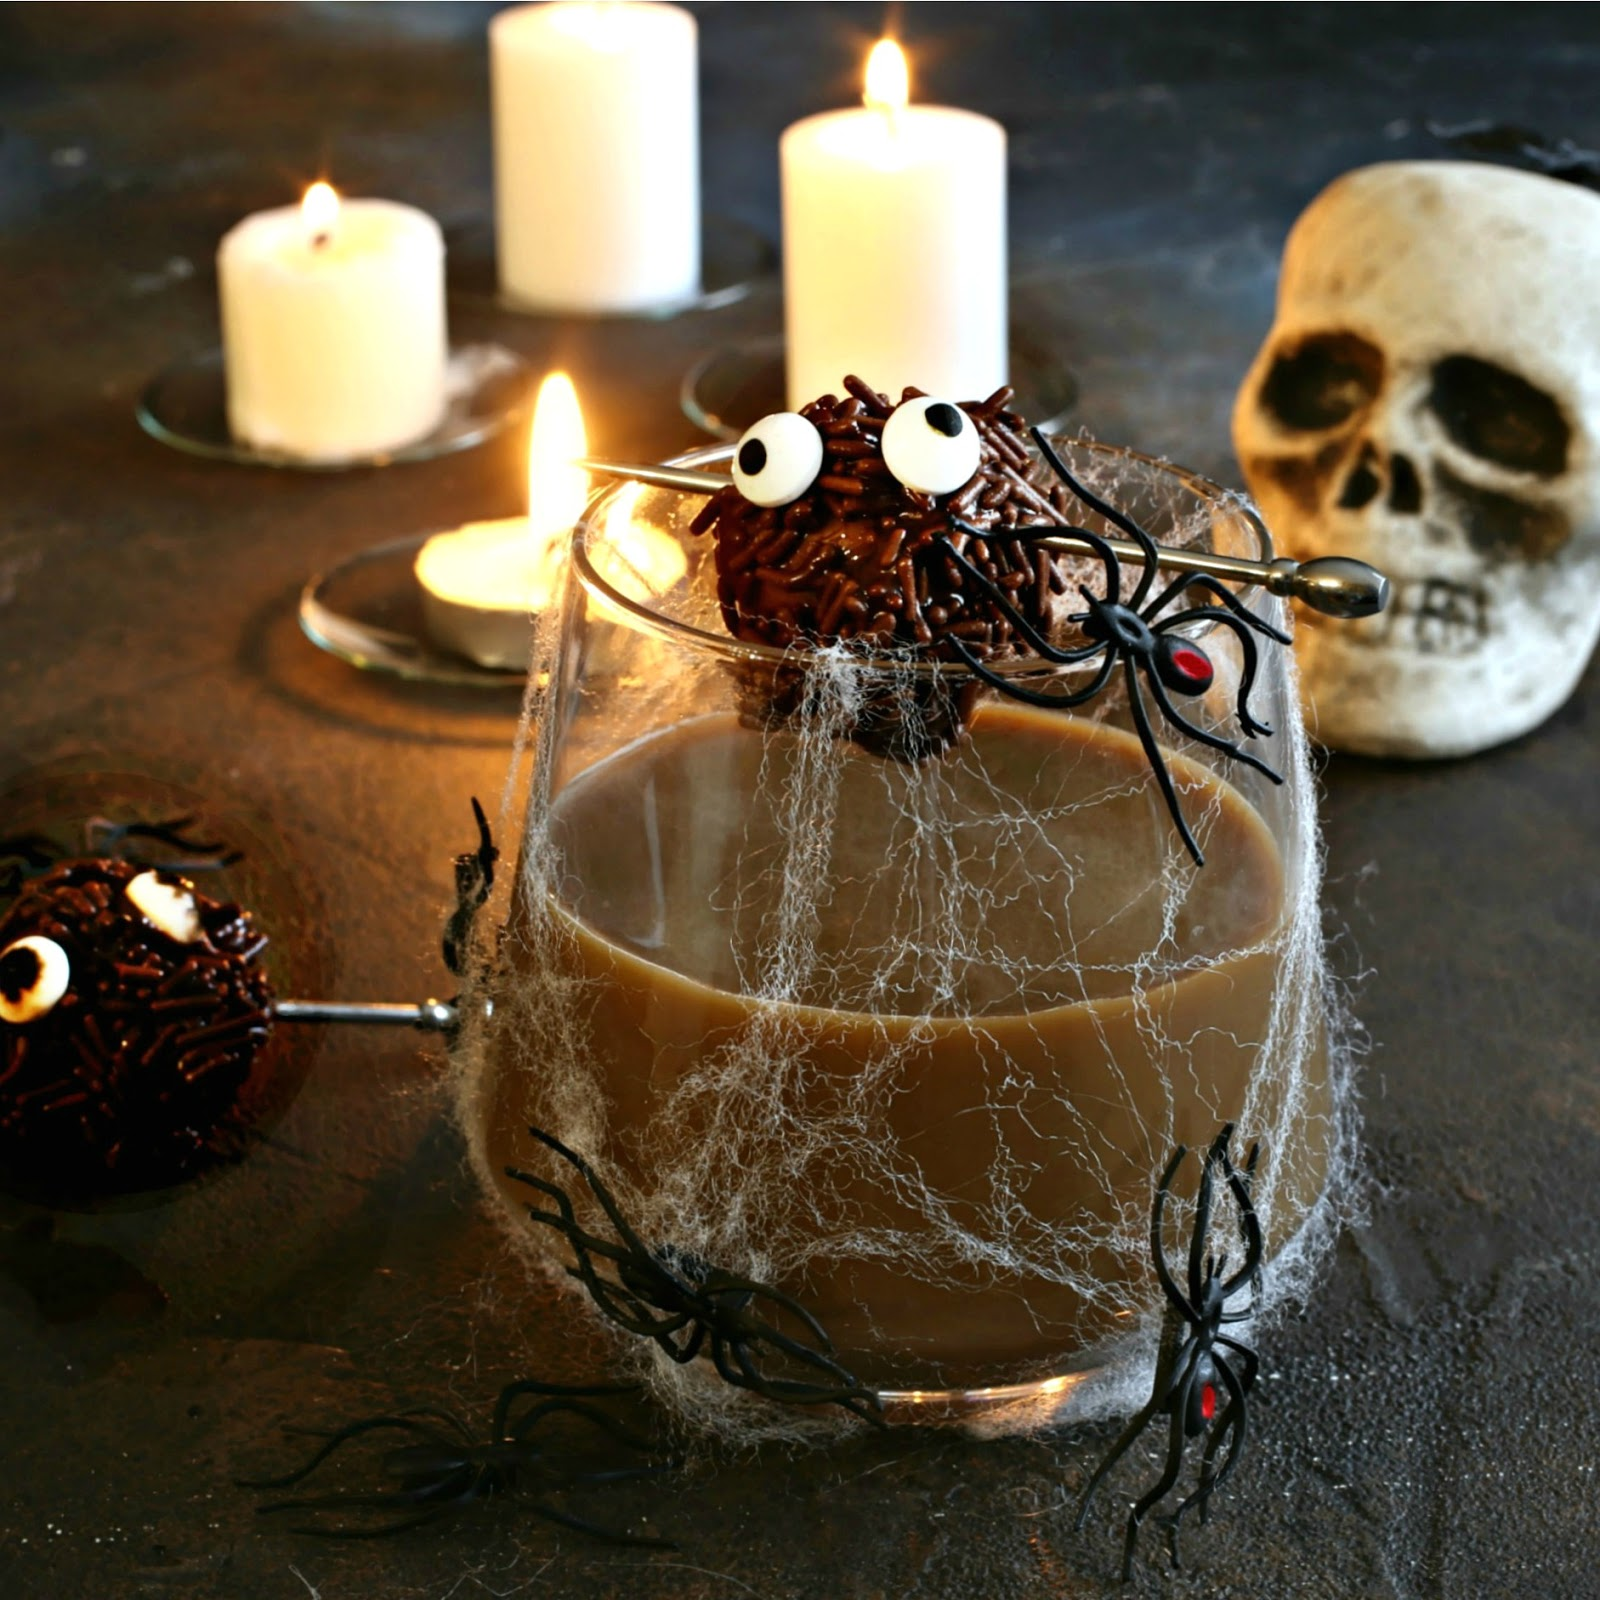 Recipe for a bourbon and chocolate cocktail, served with edible chocolate monsters.